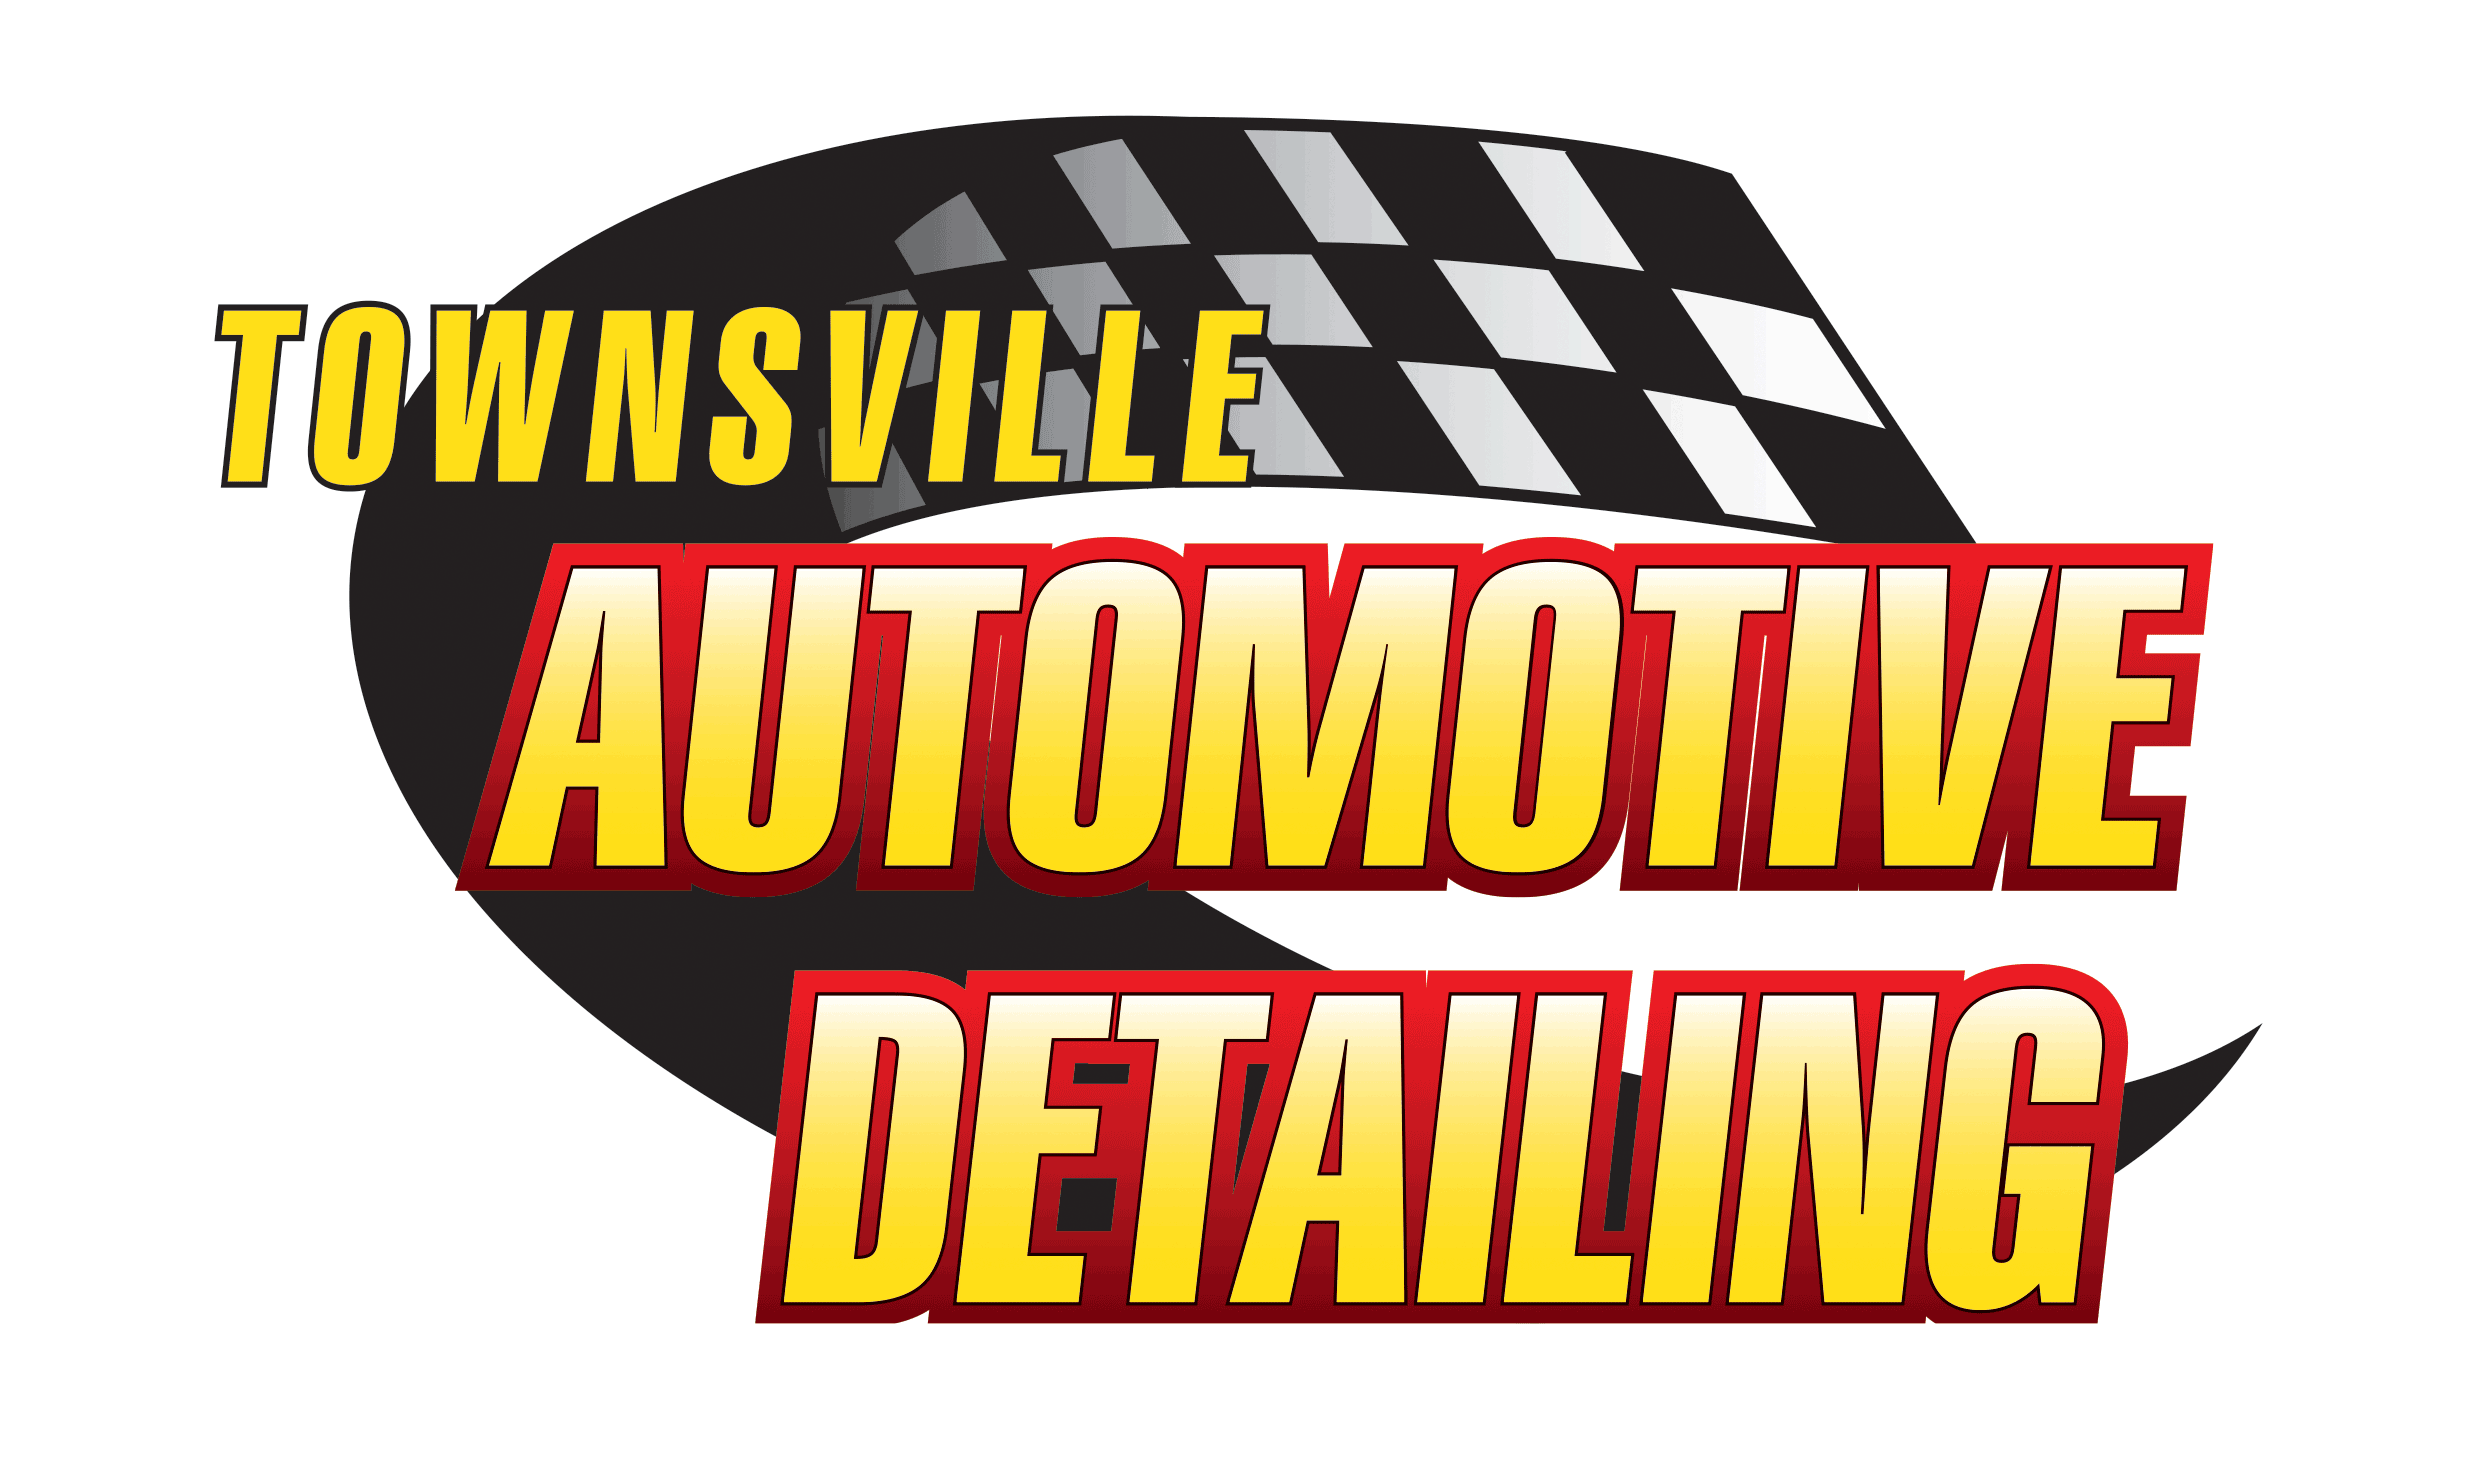 Townsville Automotive Detailing